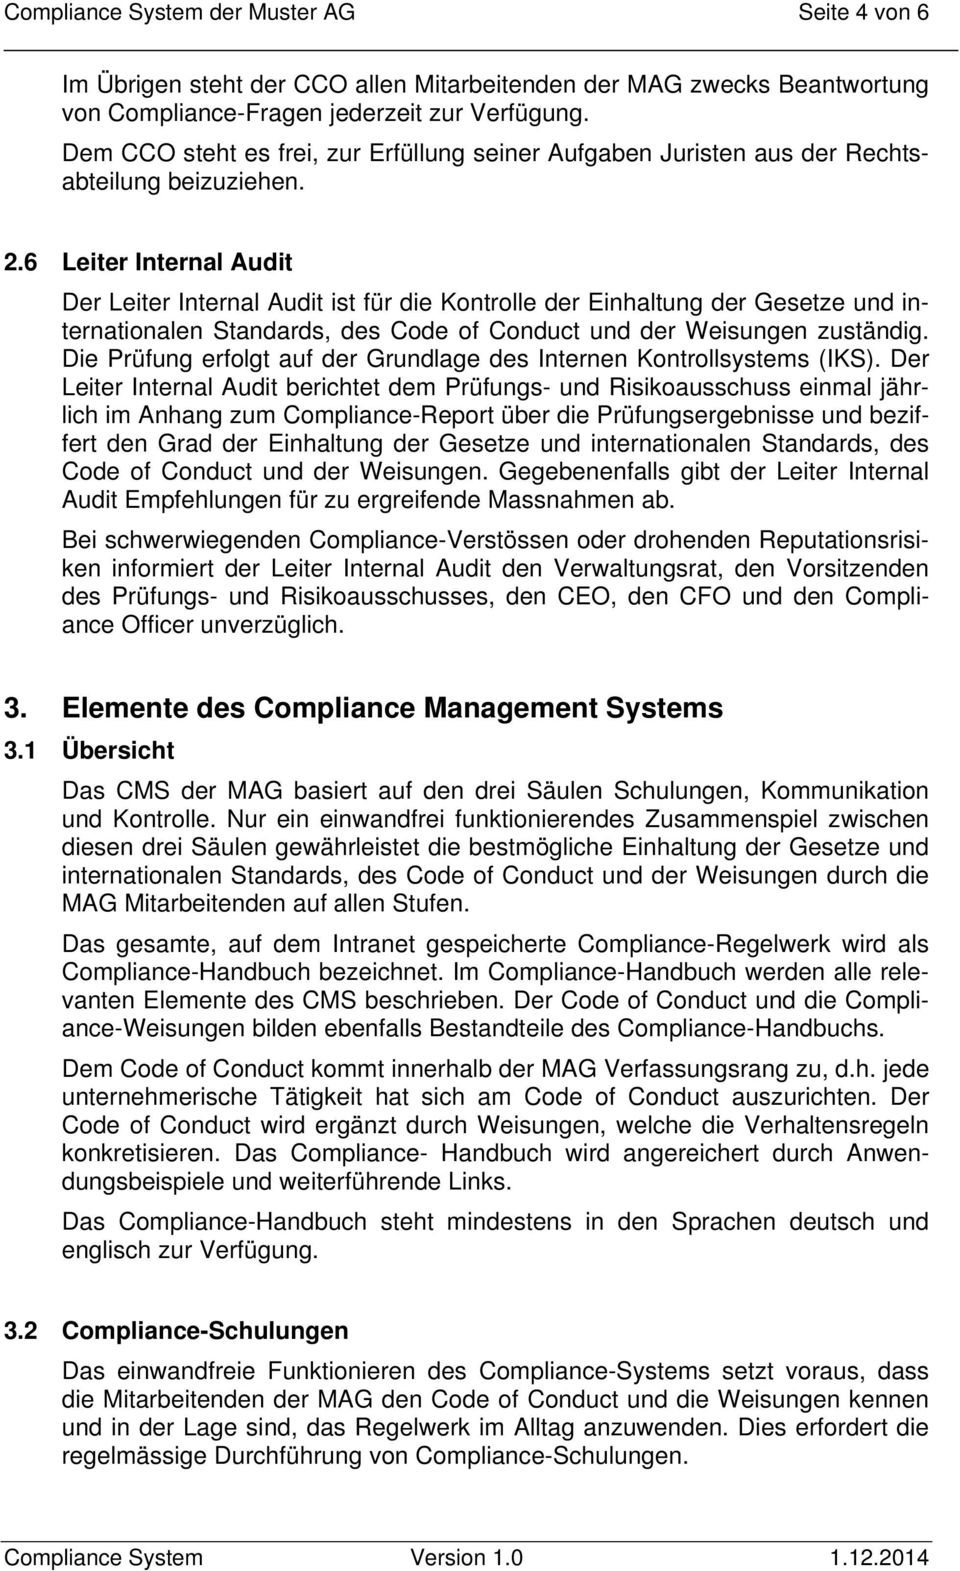 Compliance Management System Der Muster Ag Pdf Free Download